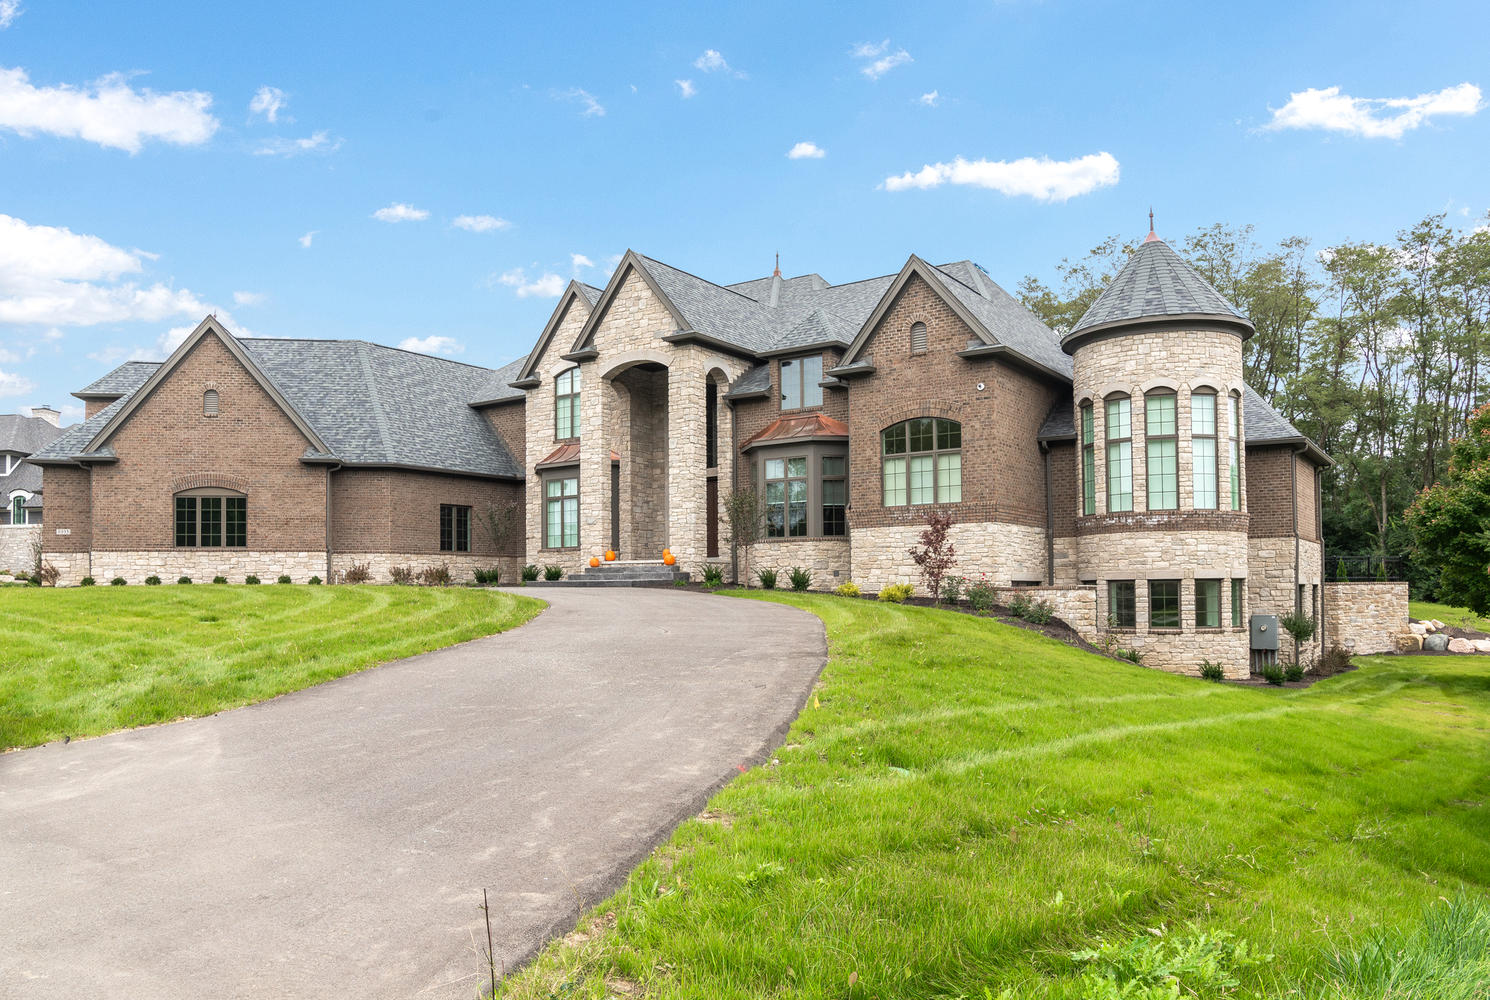 Exterior Custom Luxury Home Builder Central Indiana Madison Custom Homes Indianapolis Carmel Fishers Geist Mccordsville Westfield Zionsville General Contactor Project Construction Manager